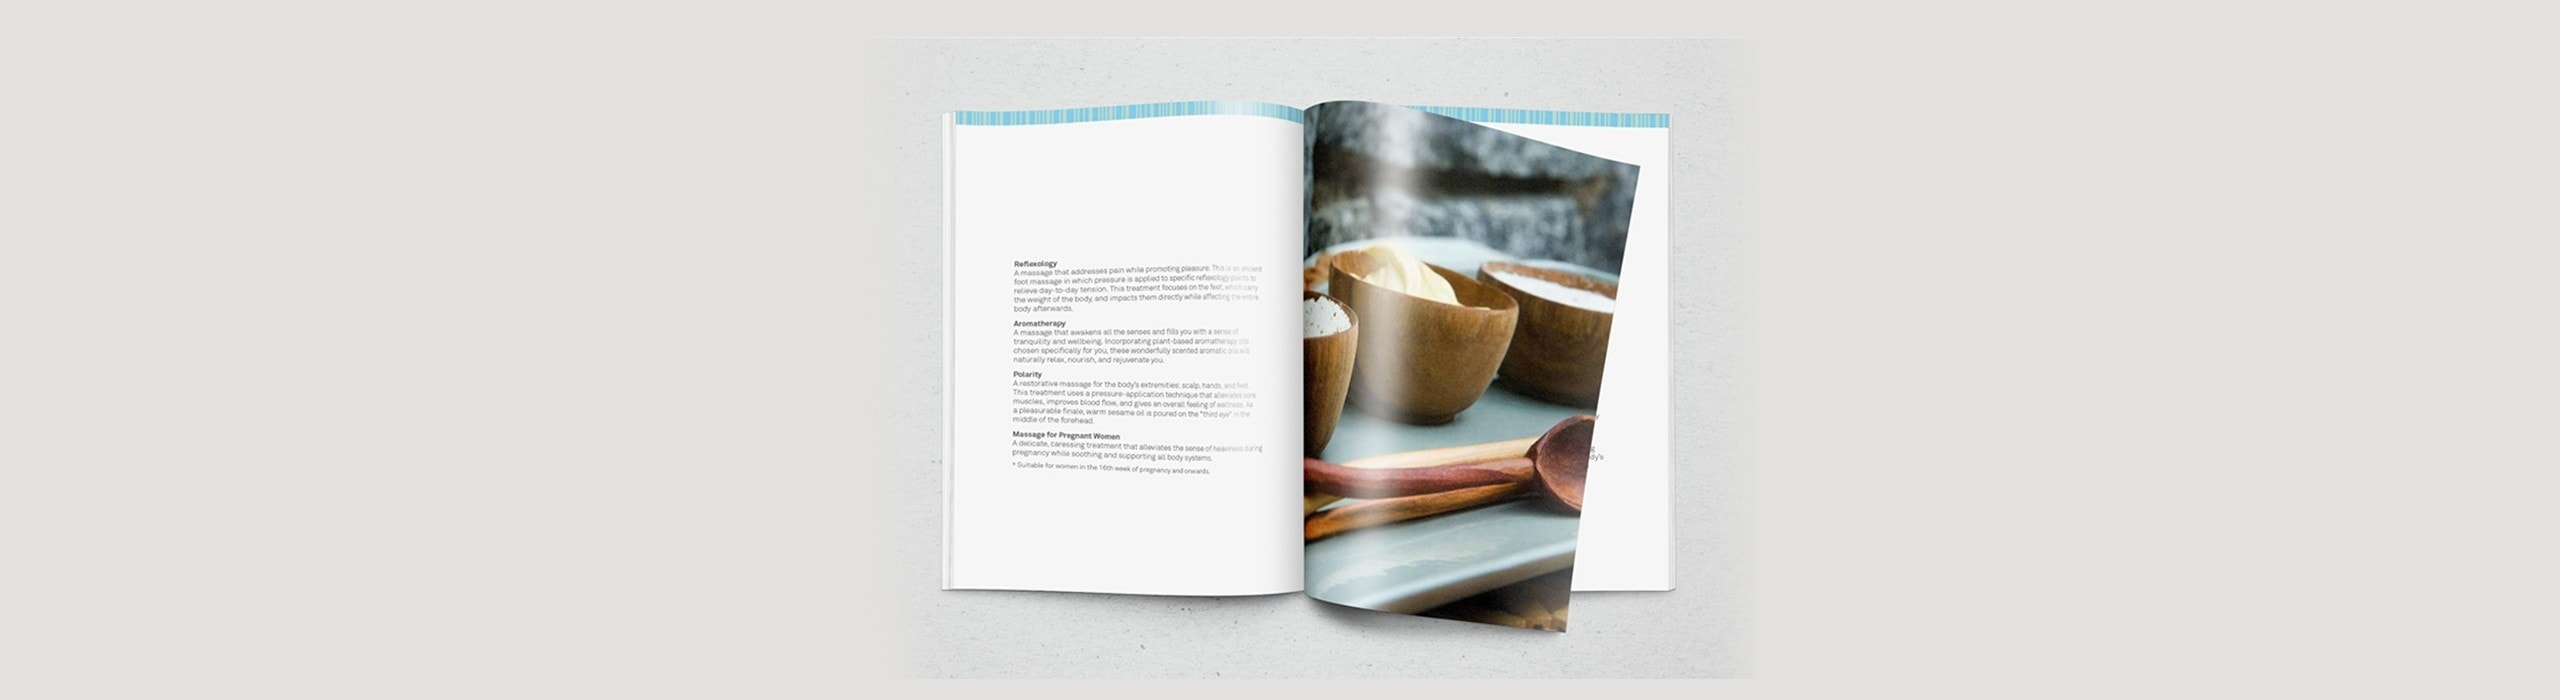 Elma - natie-elma-spa-brochure-02 - Natie Branding Agency